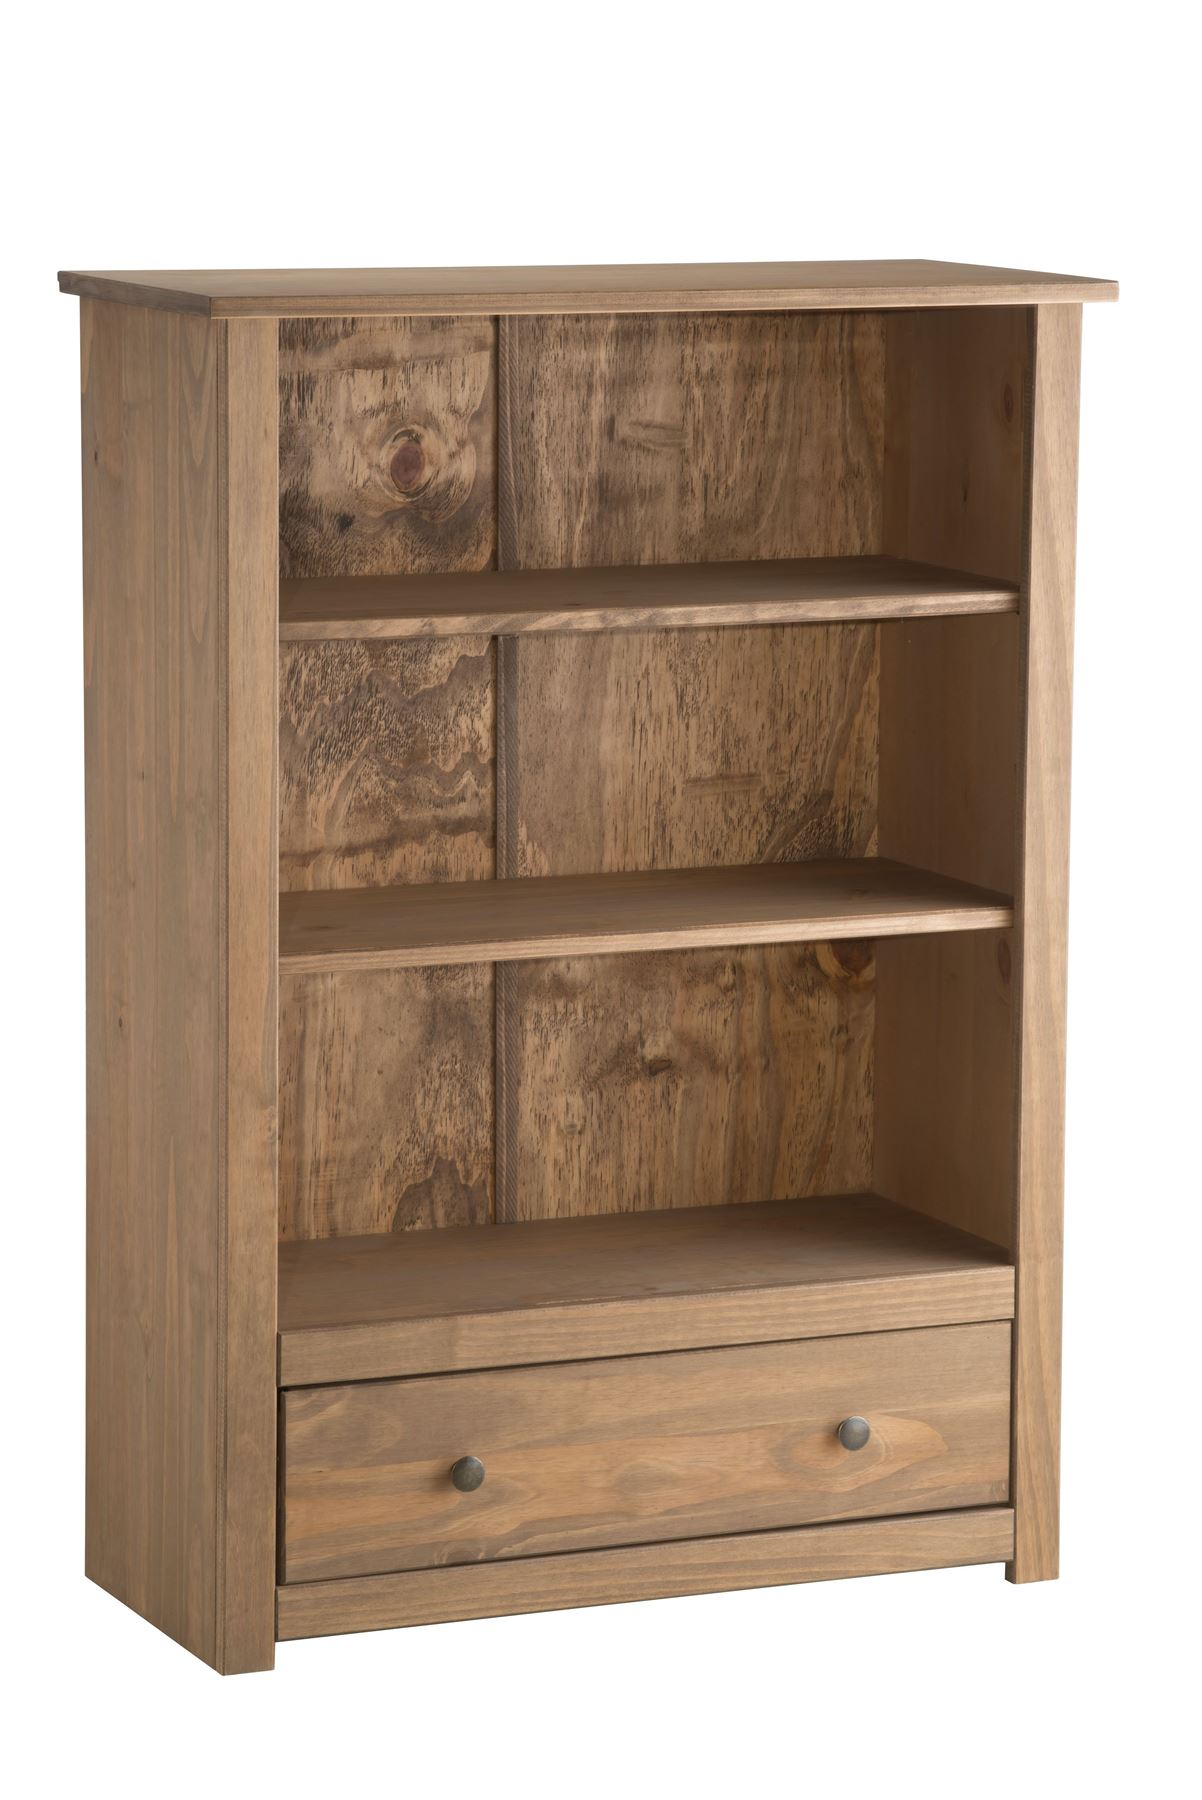 Birlea Santiago Drawer Bookcase Corona Mexican Pine Solid Wood Furniture Waxed Ebay